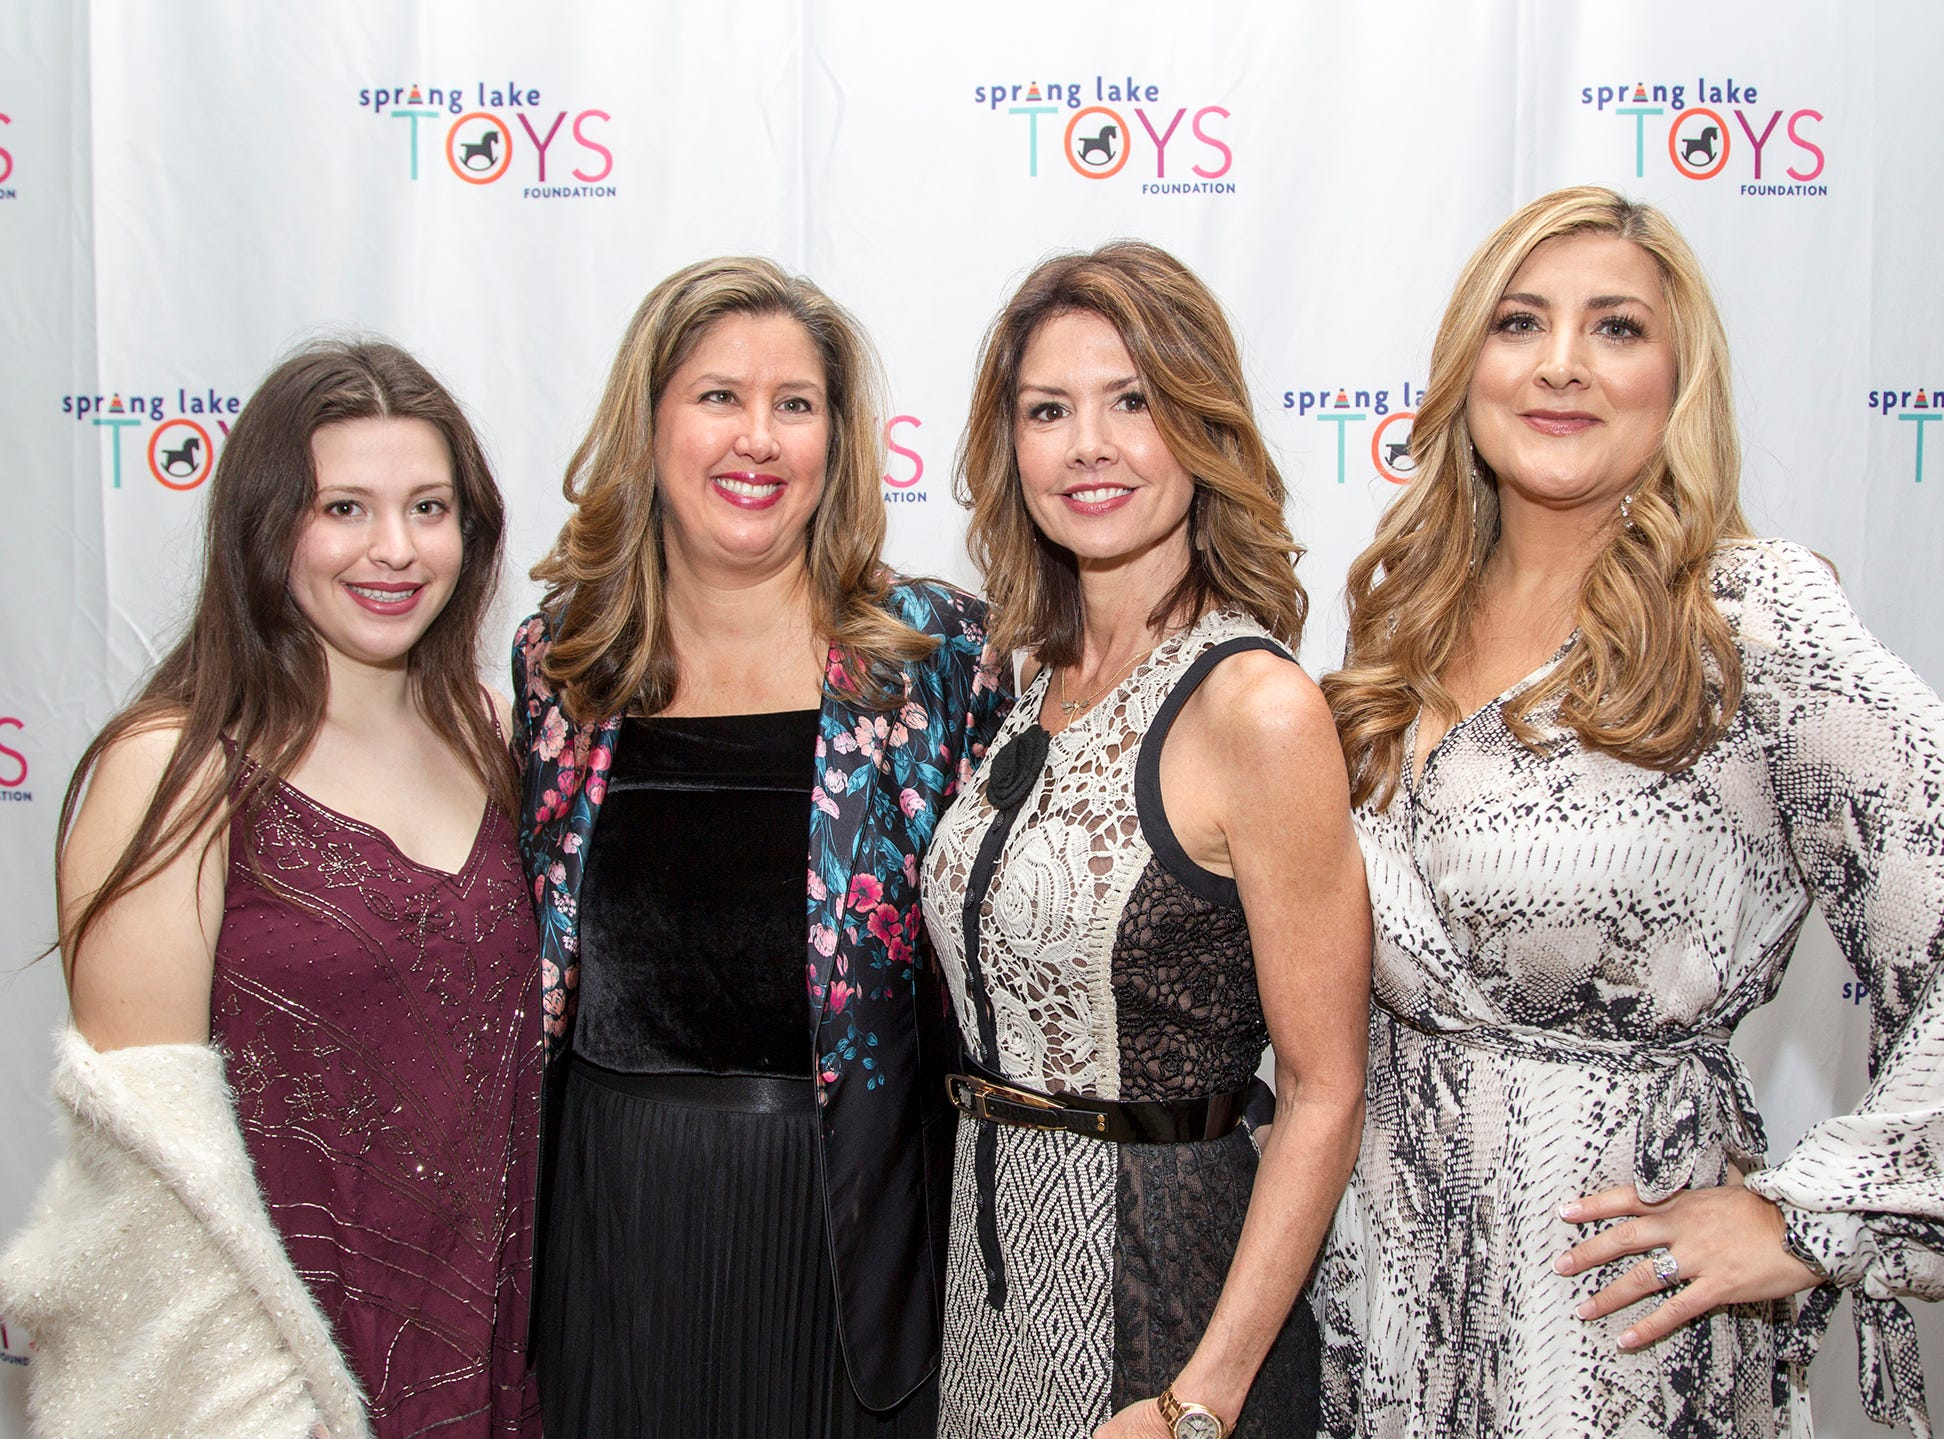 Bielle Weiner, Paulette Pera Laurenzi,Marci Hopkins, Antonetta Romano. Spring Lake Toys Foundation held its 3rd annual fundraising gala luncheon at Indian Trail Club in Franklin Lakes. The luncheon fundraiser raises funds for children with illnesses. 10/18/2018